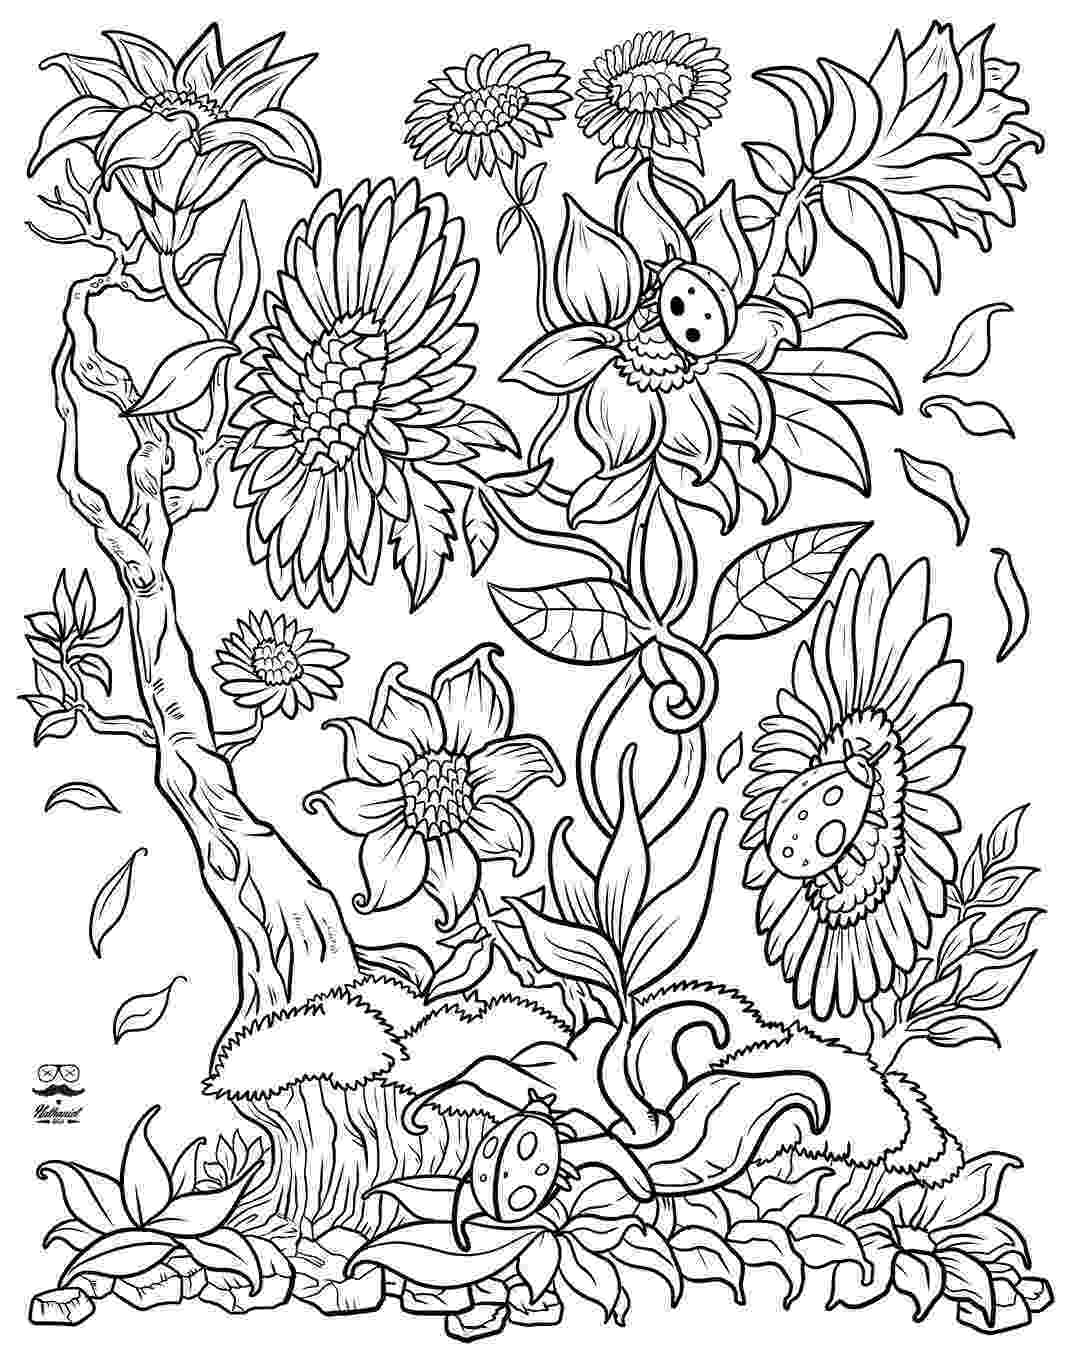 flower coloring books free printable flower coloring pages for kids best coloring books flower 1 1